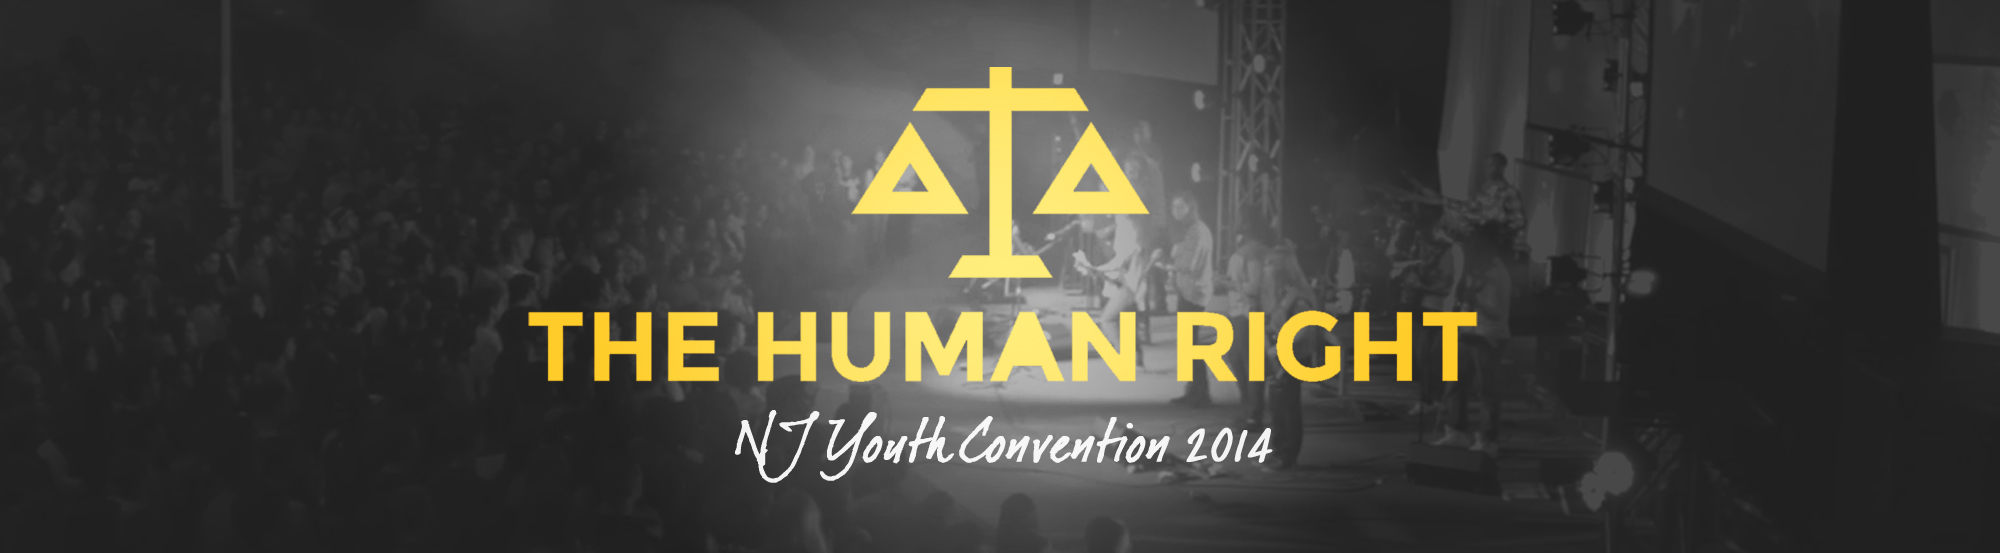 NJYouthConvention2014main